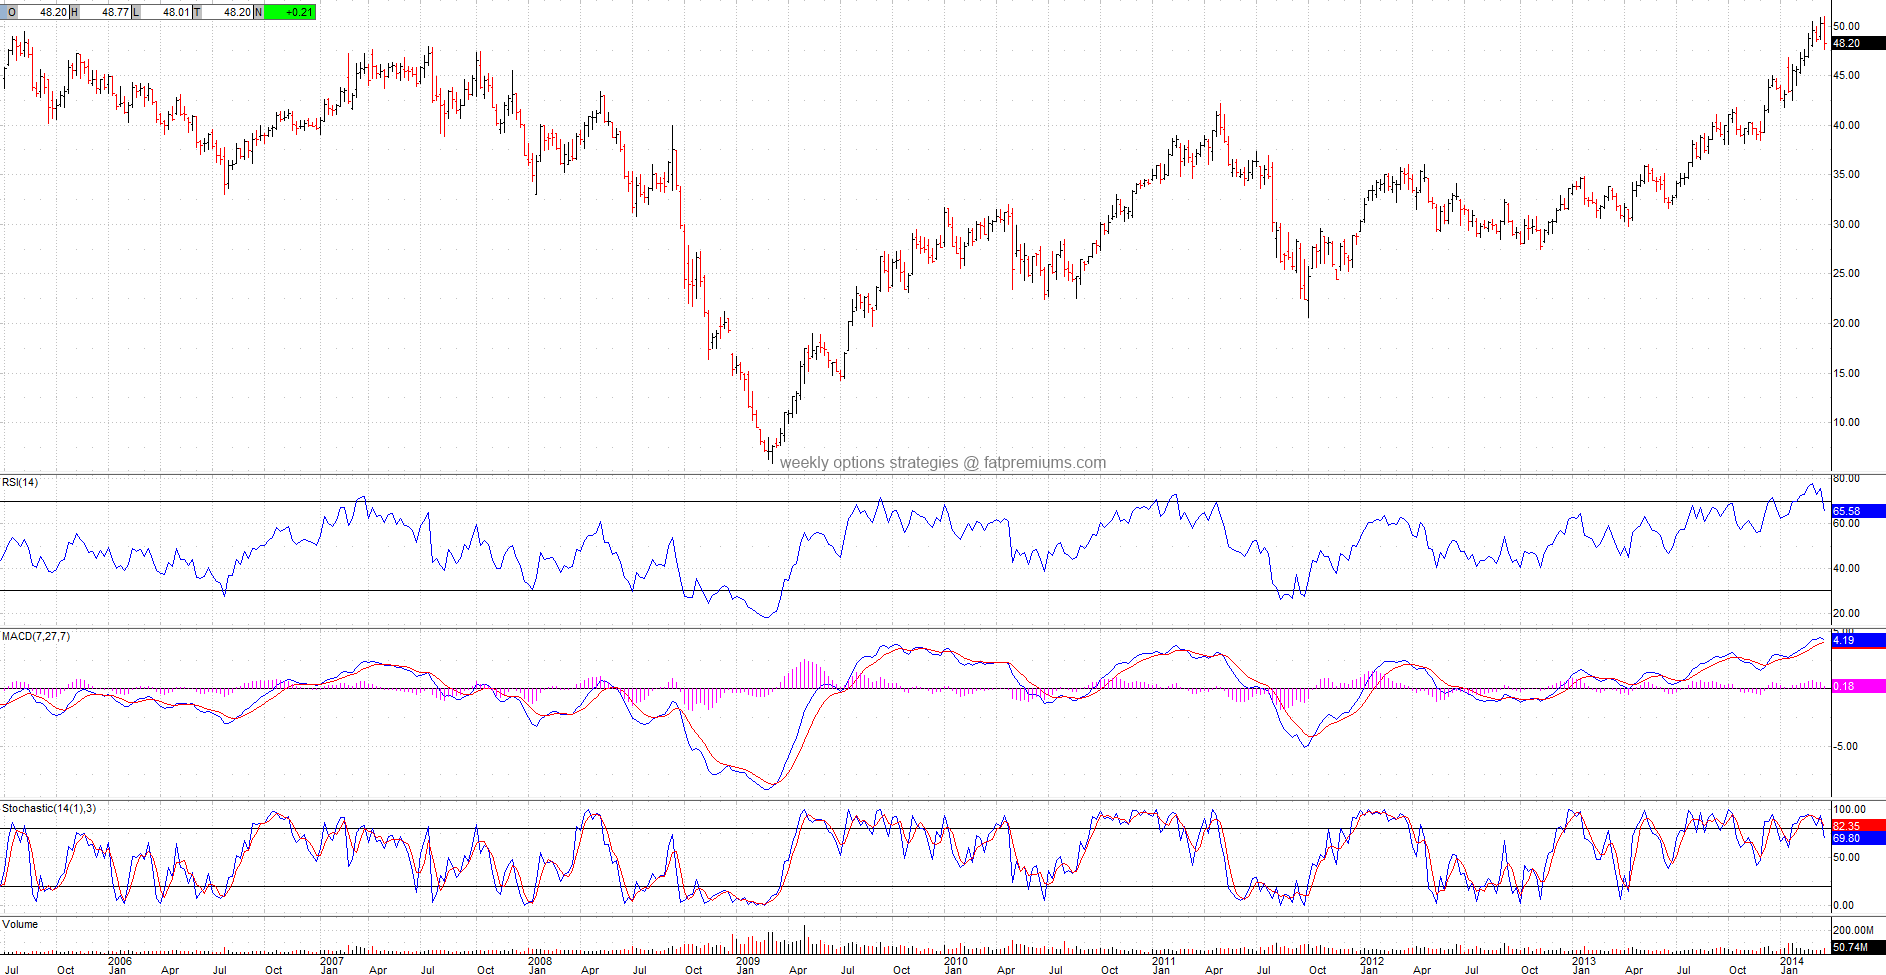 DOW Chemical Company (NYSE:DOW) Weekly Chart (2014-03-29) Bearish